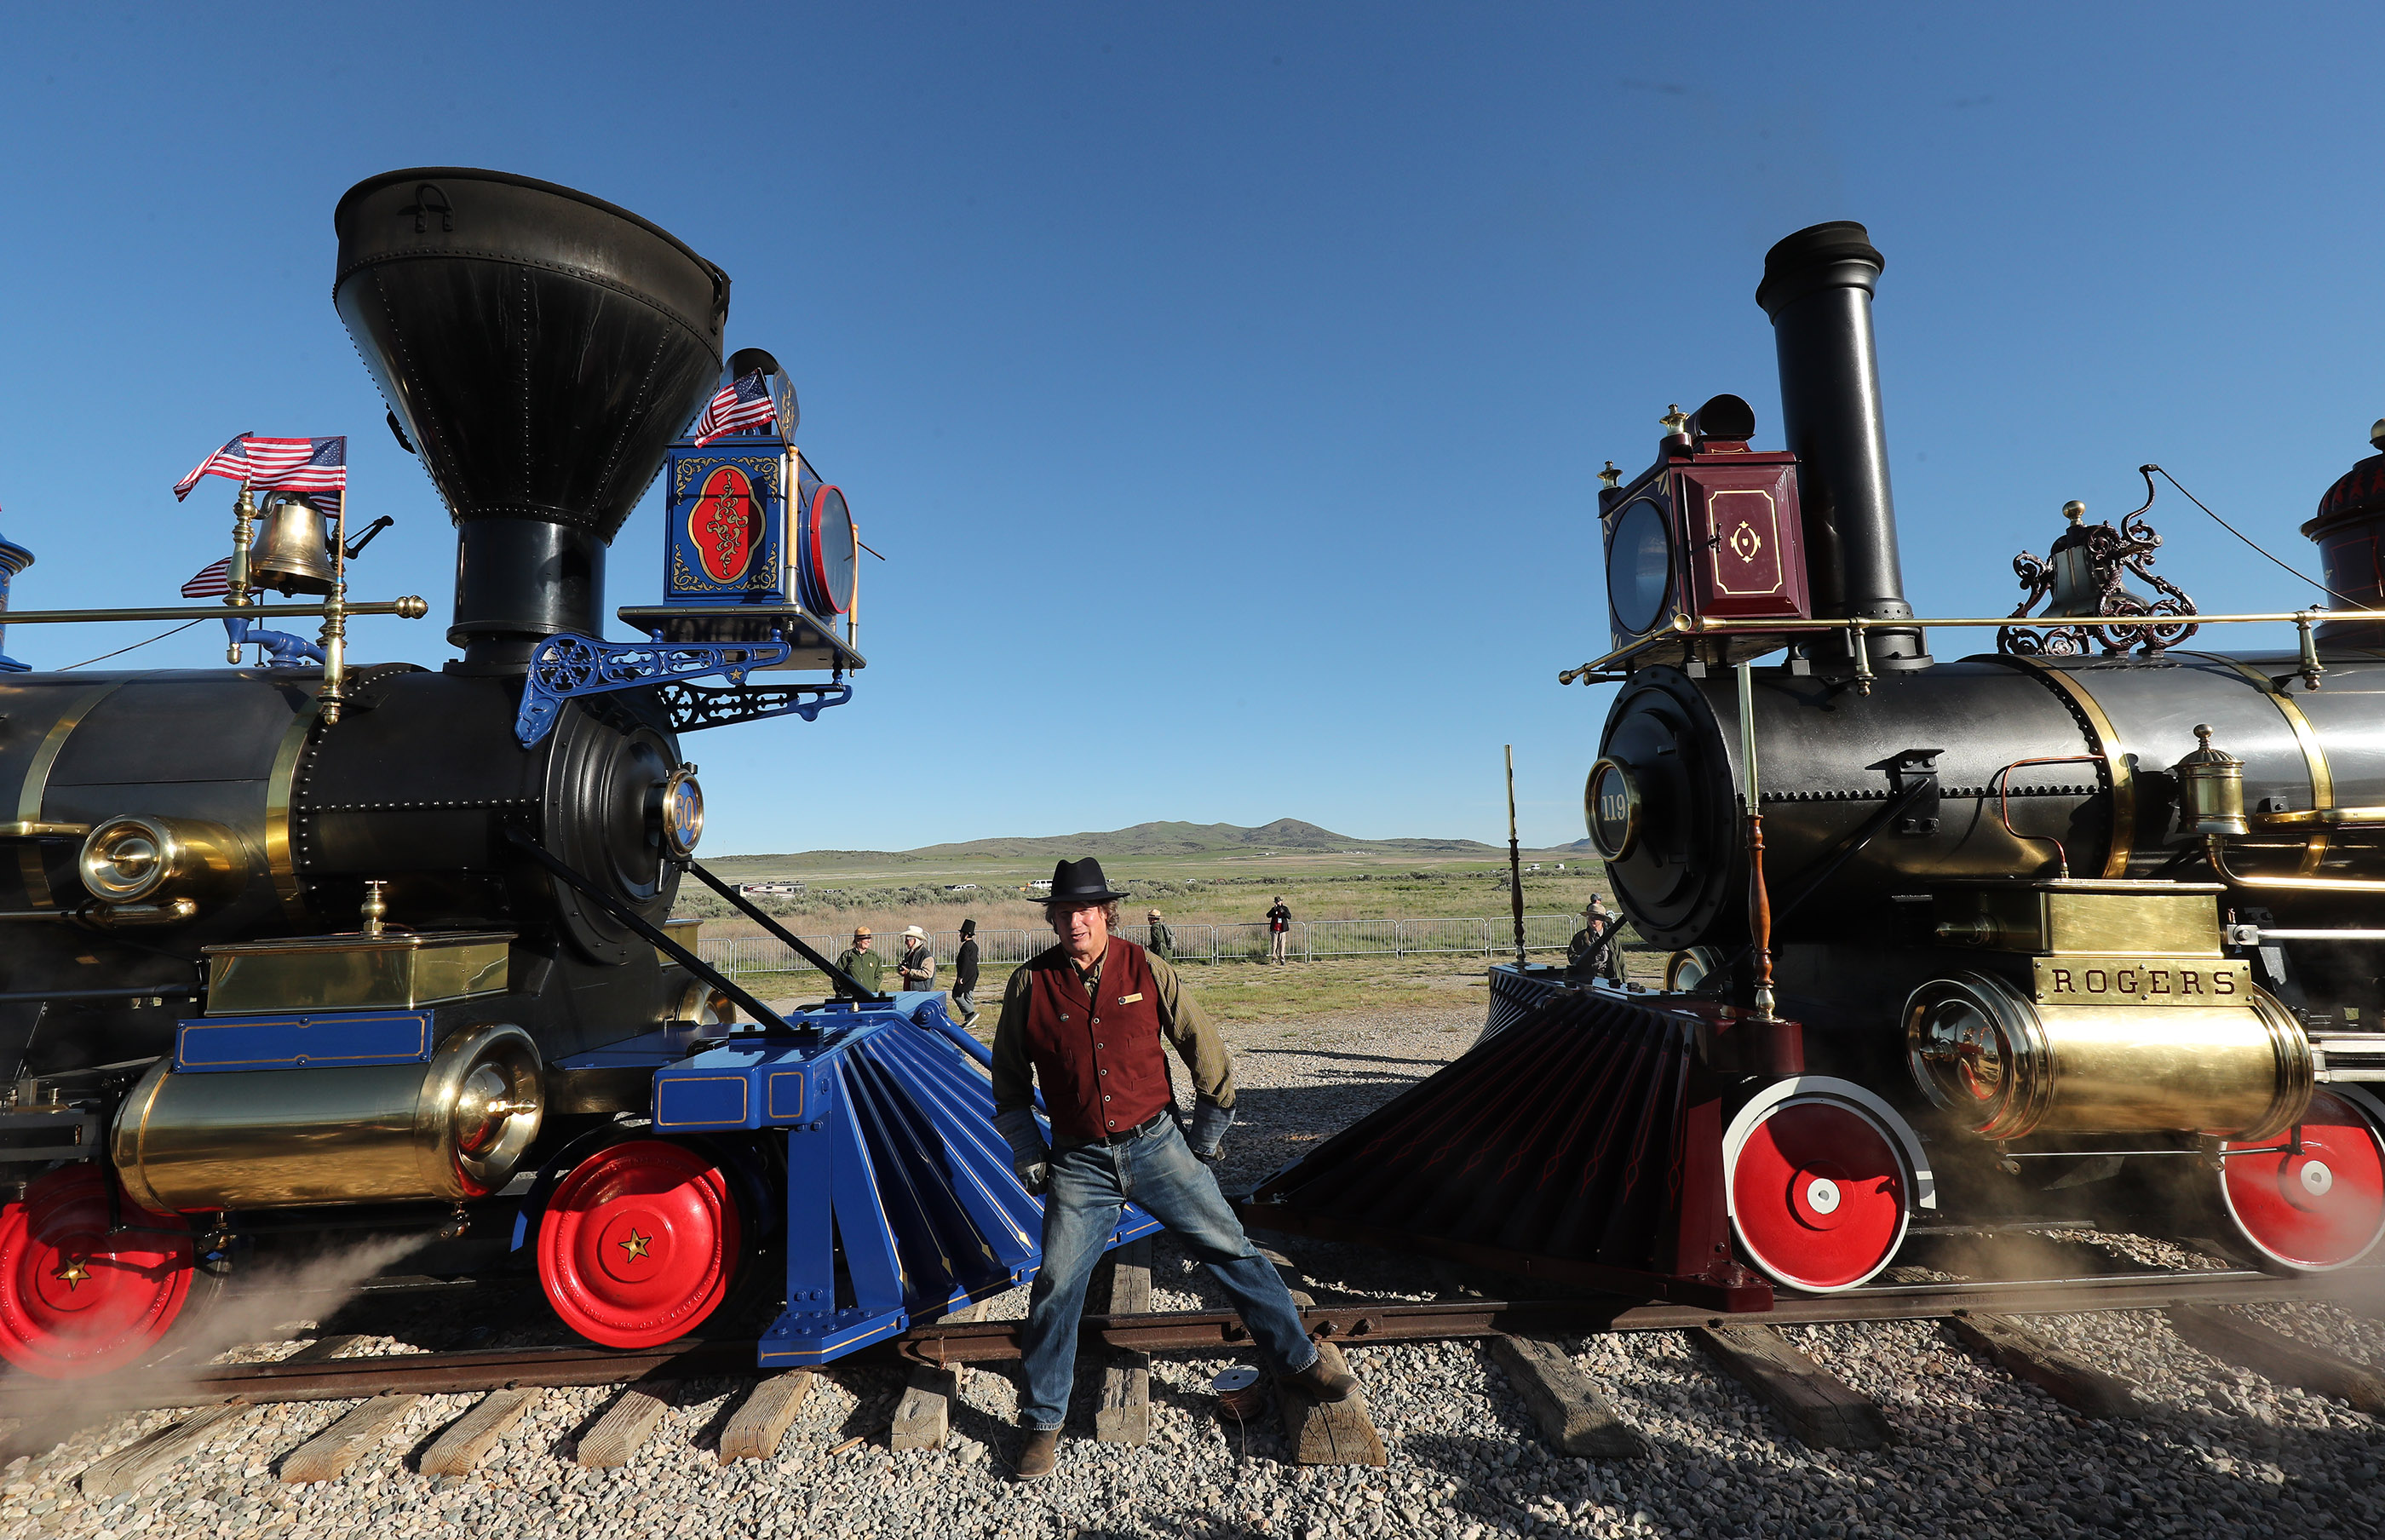 Volunteer Patrick Jeffrey stands near the Jupiter and No. 119 engines during the 150th anniversary celebration at the Golden Spike National Historical Park at Promontory Summit on Friday, May 10, 2019.